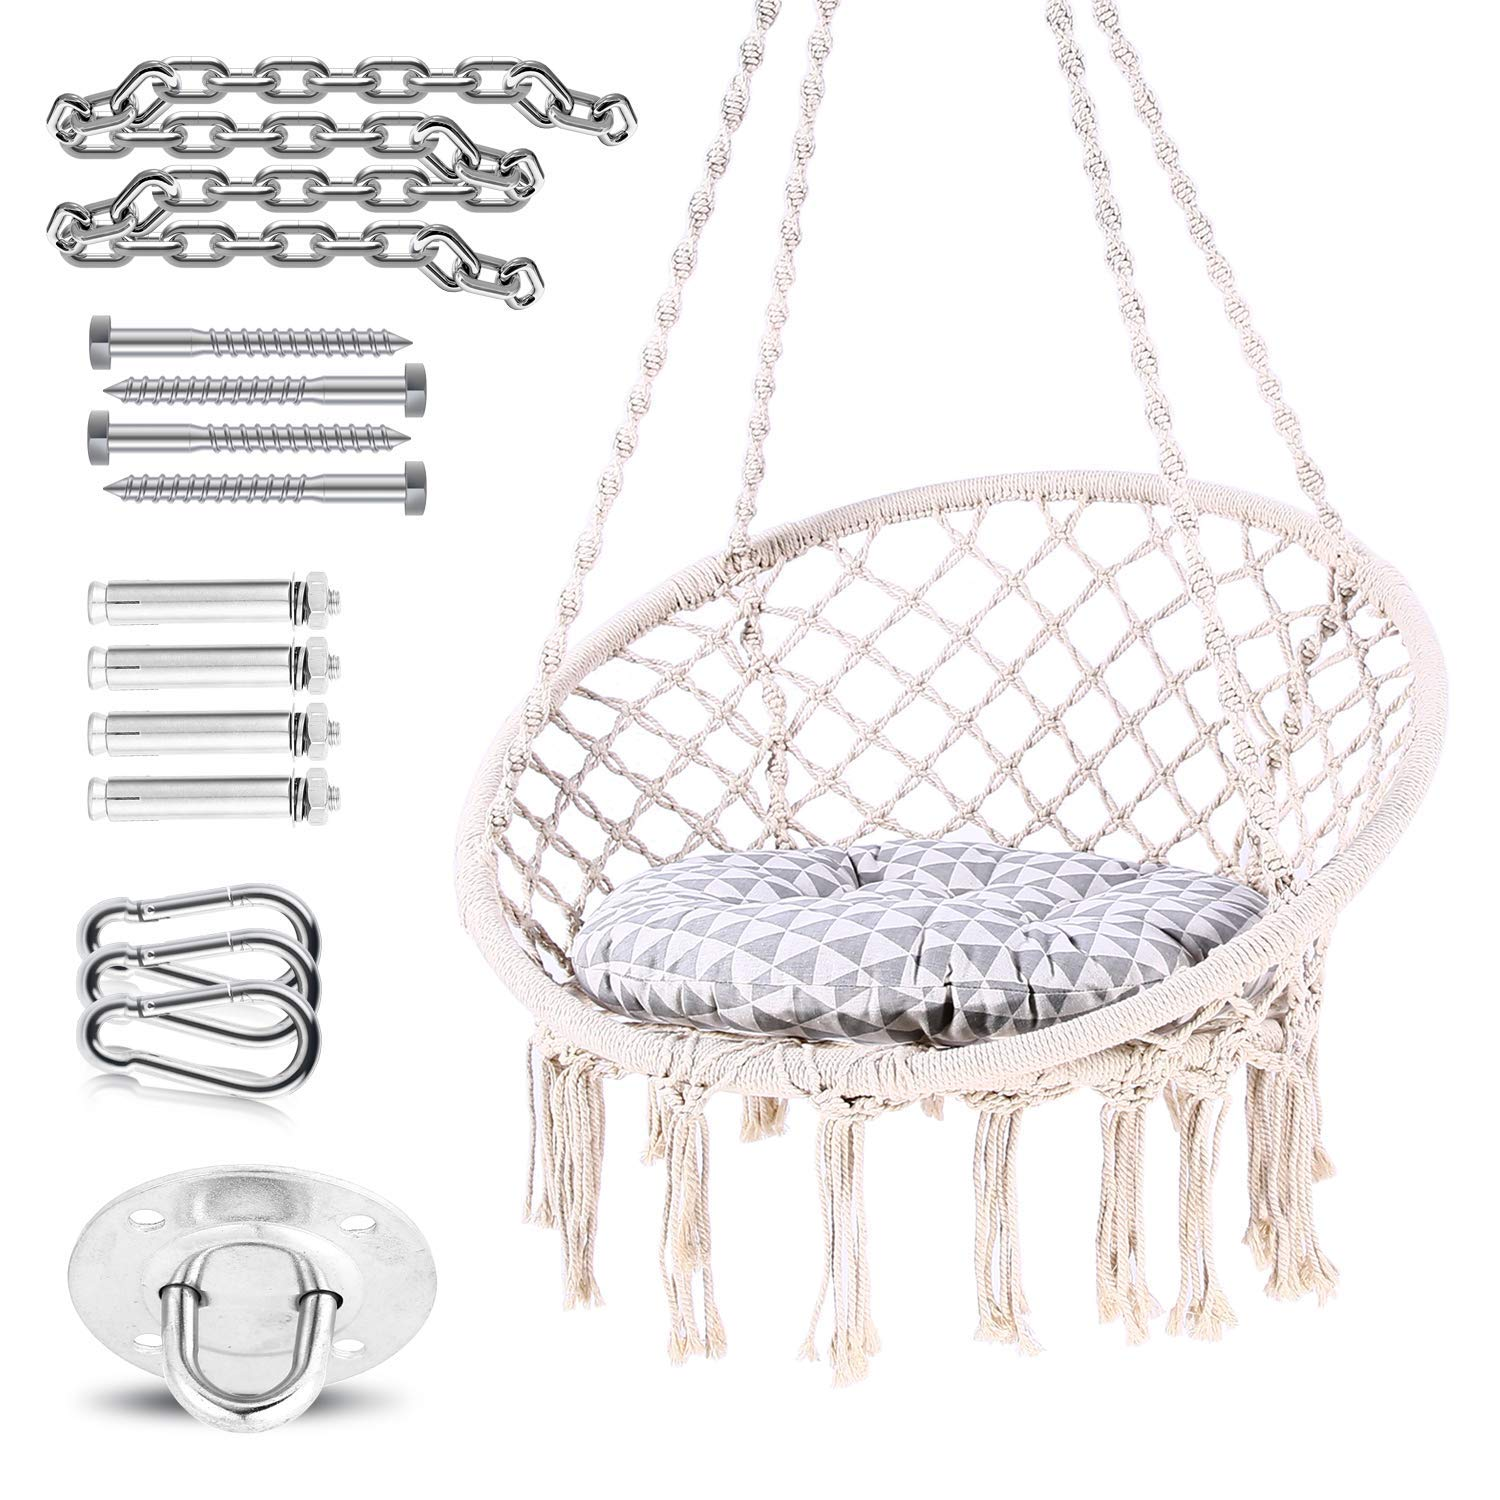 Mua Ohuhu Hanging Chair Swing With Durable Hanging Fittings Soft Cushion Comfortable Hanging Rope Rocking Chair Heavy Duty Hanging Chair For Indoor Outdoor Home Garden Tren Amazon đức Chinh Hang 2020